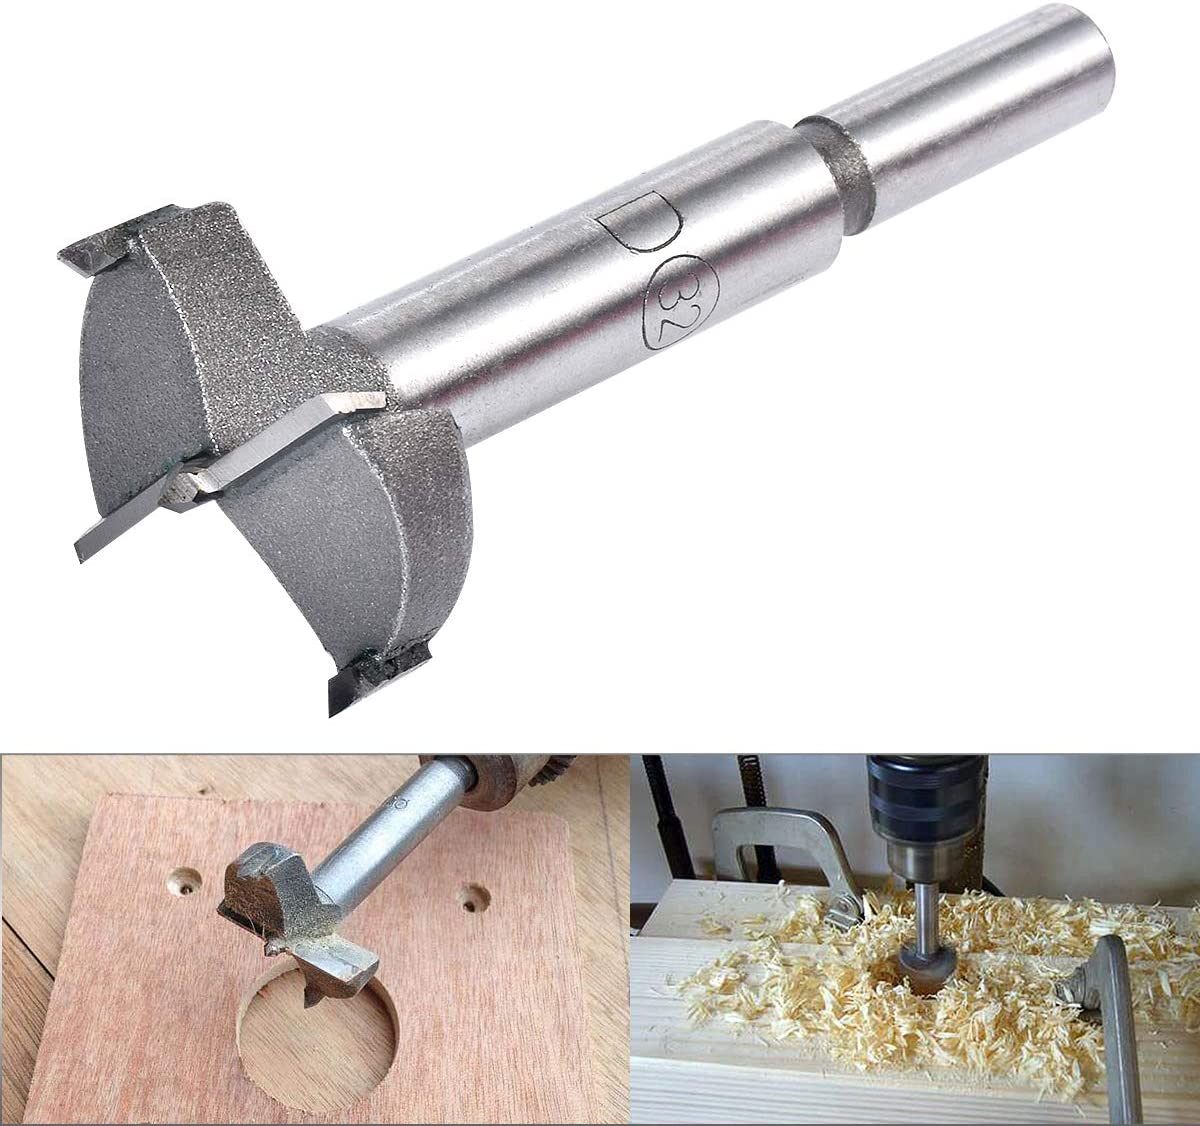 MDF 25mm Diameter Carbide Tip Round Shank Cutting for Hinge Plywood Woodworking Boring Hinge Hole Saw Wooden Hole Opener Boring Bits CNC Tool KATUR 25mm Forstner Auger Drill Bit